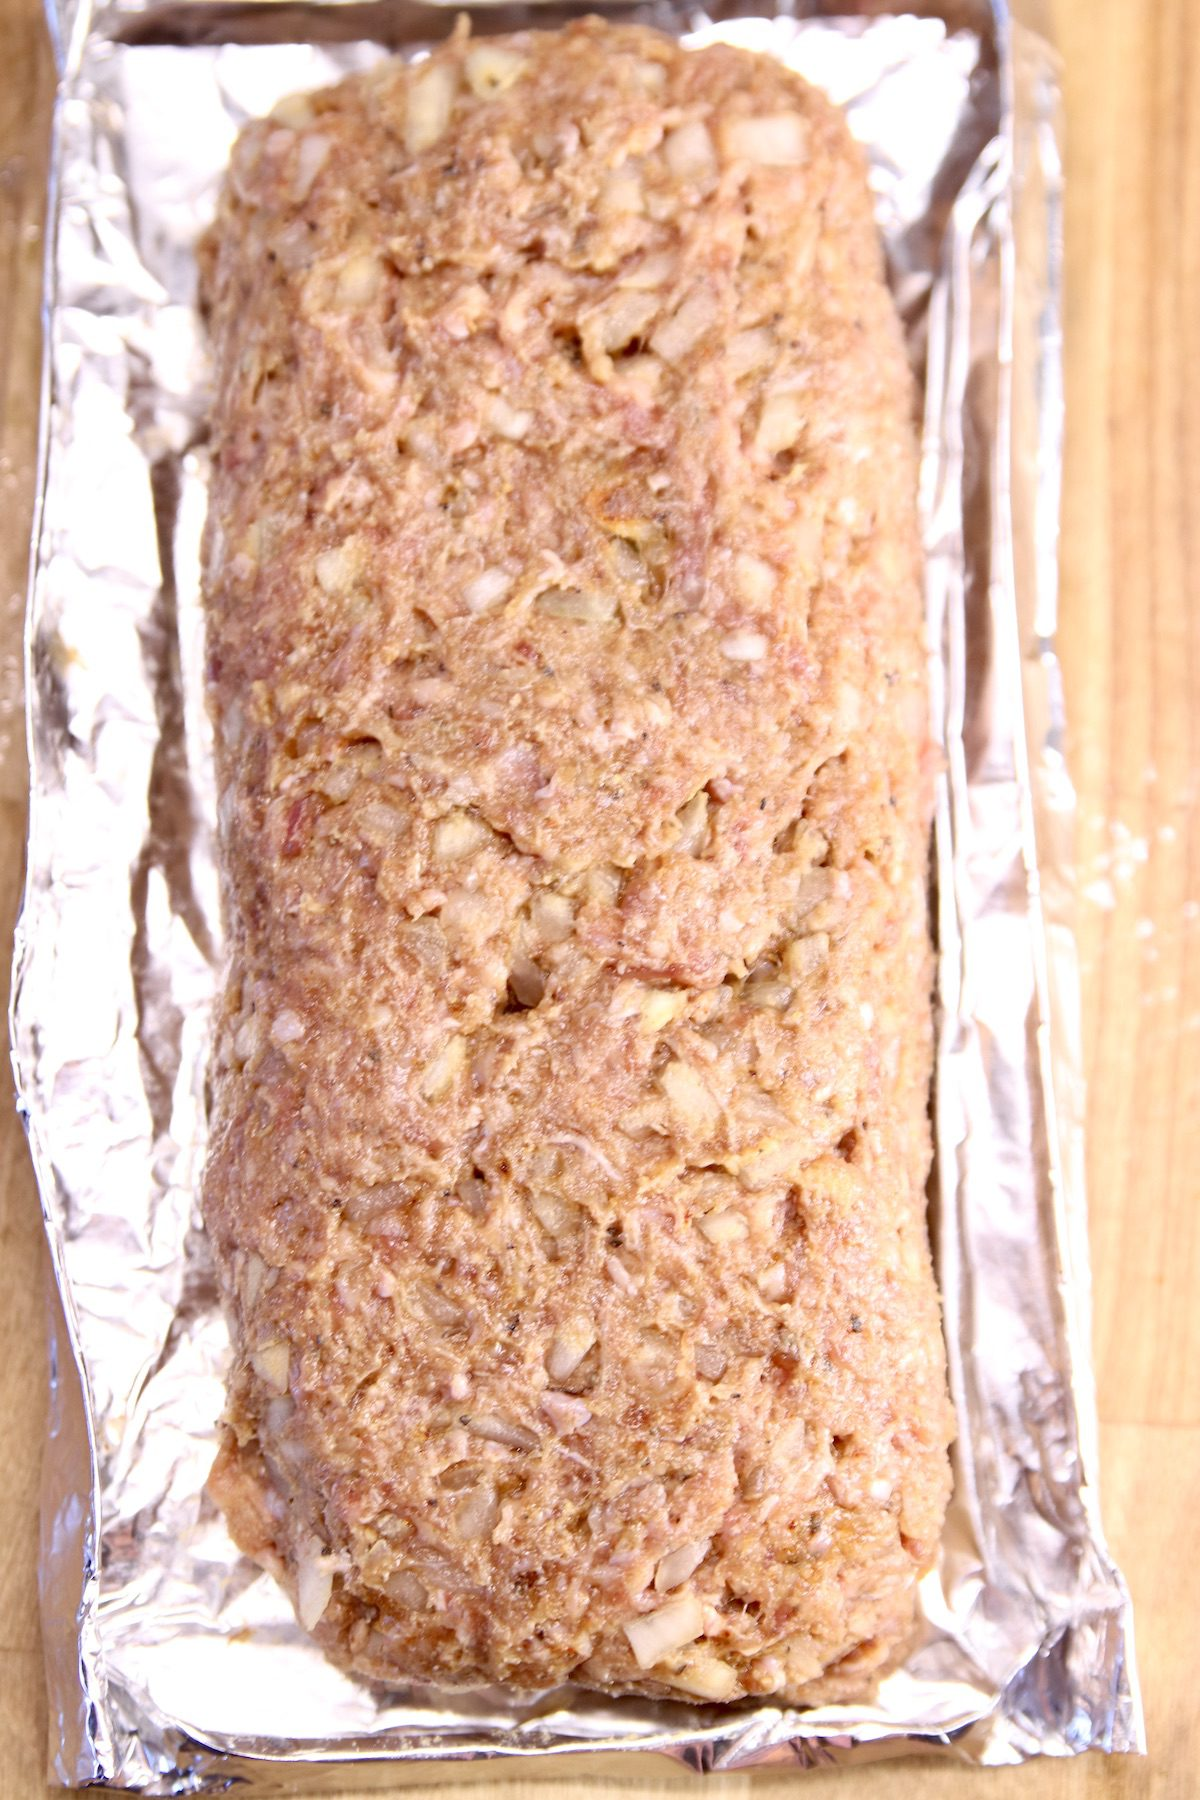 raw meatloaf mixture on a foil pan